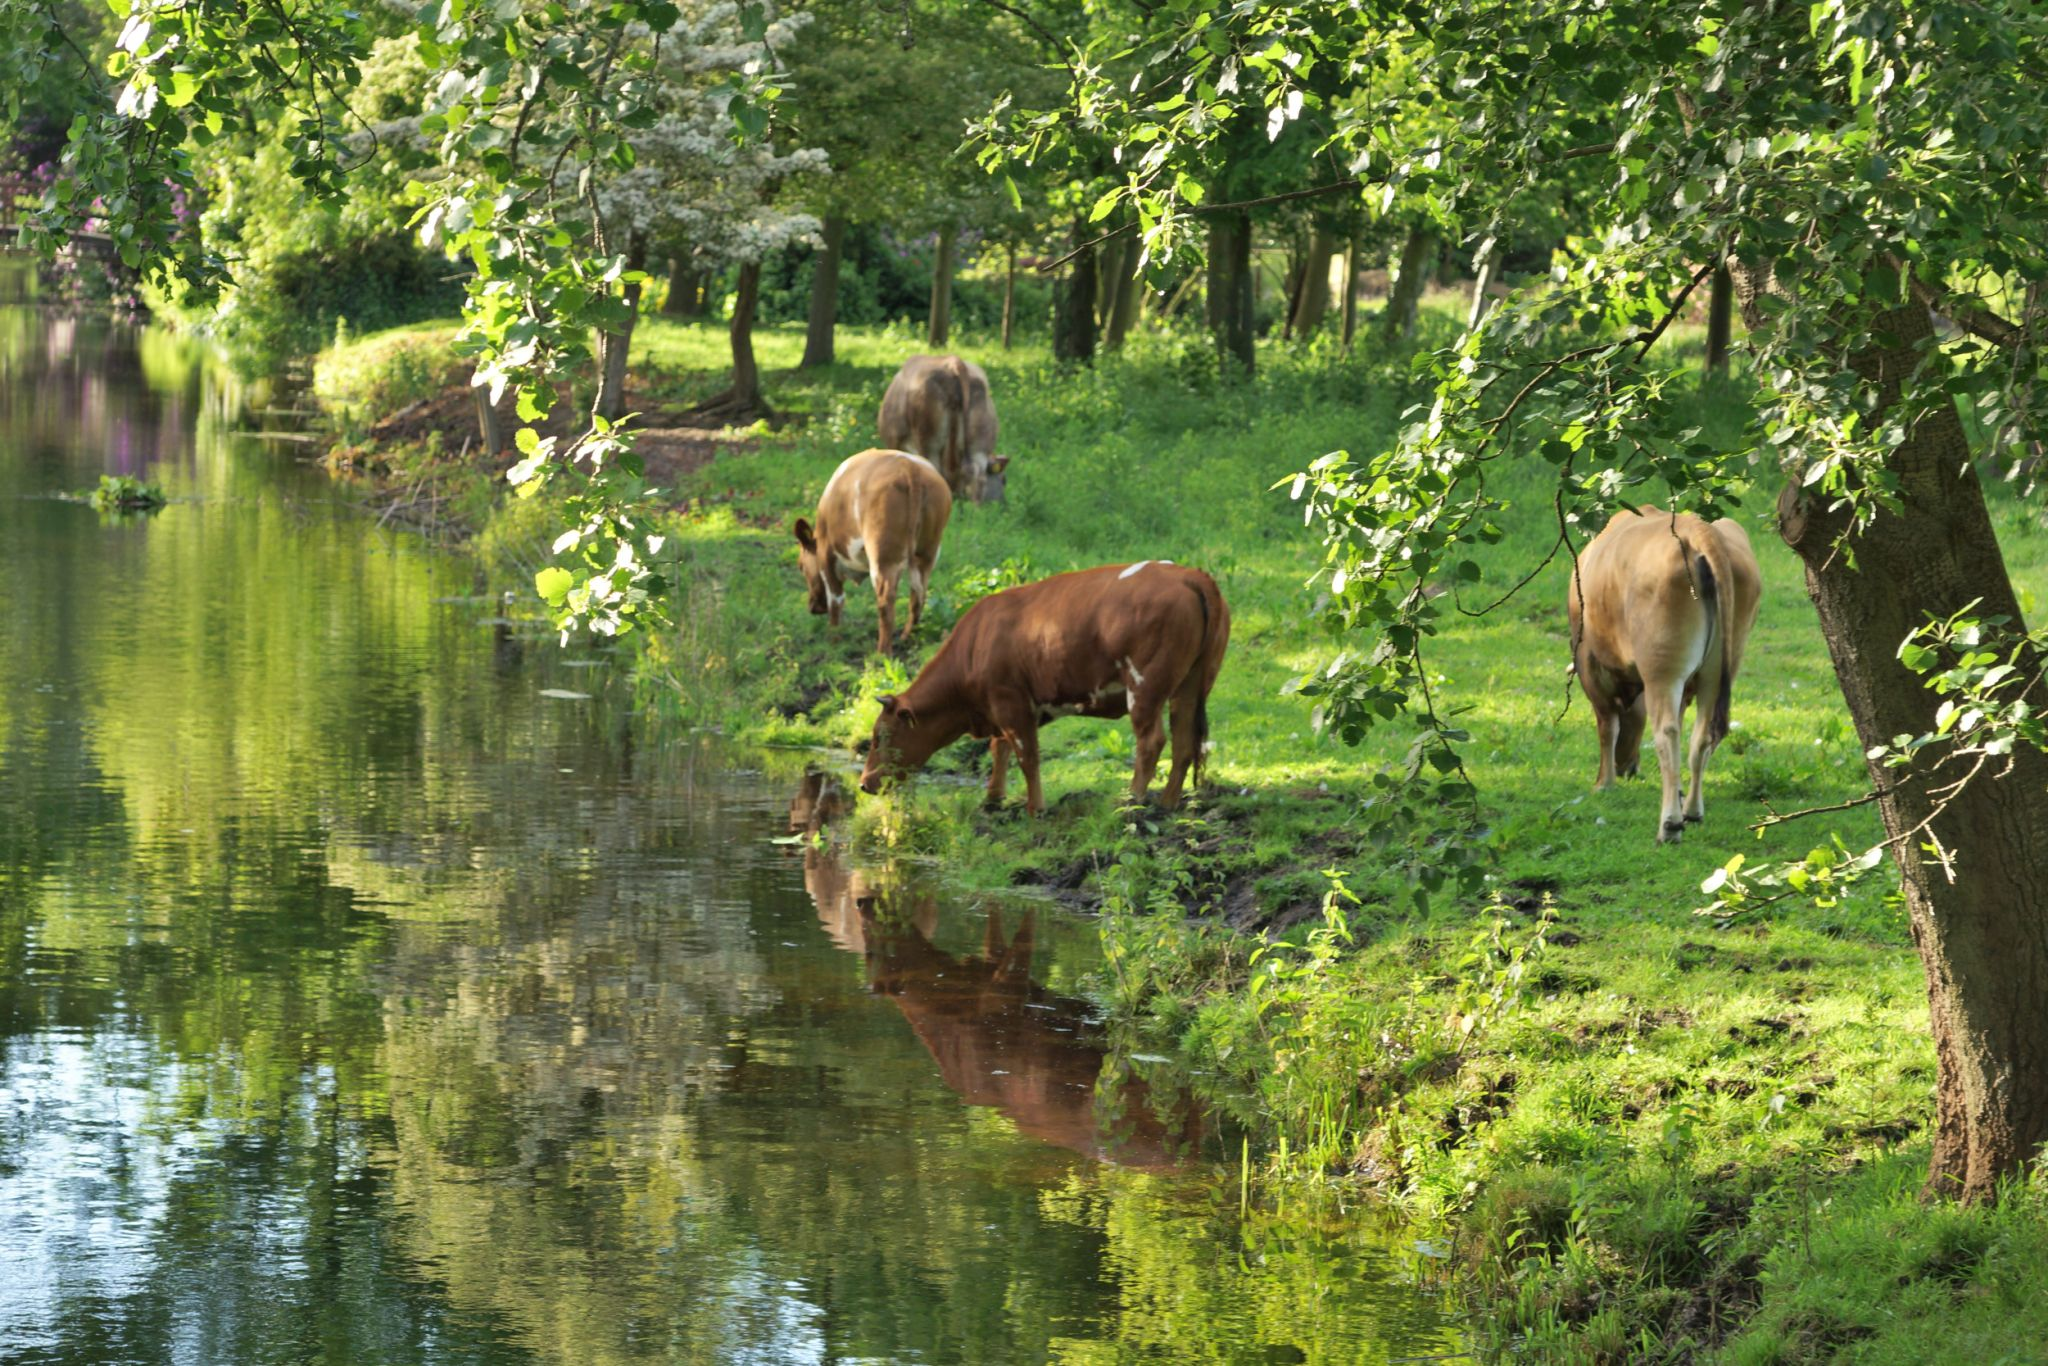 Cows grazing at Park Clingendael, The Hague, Netherlands